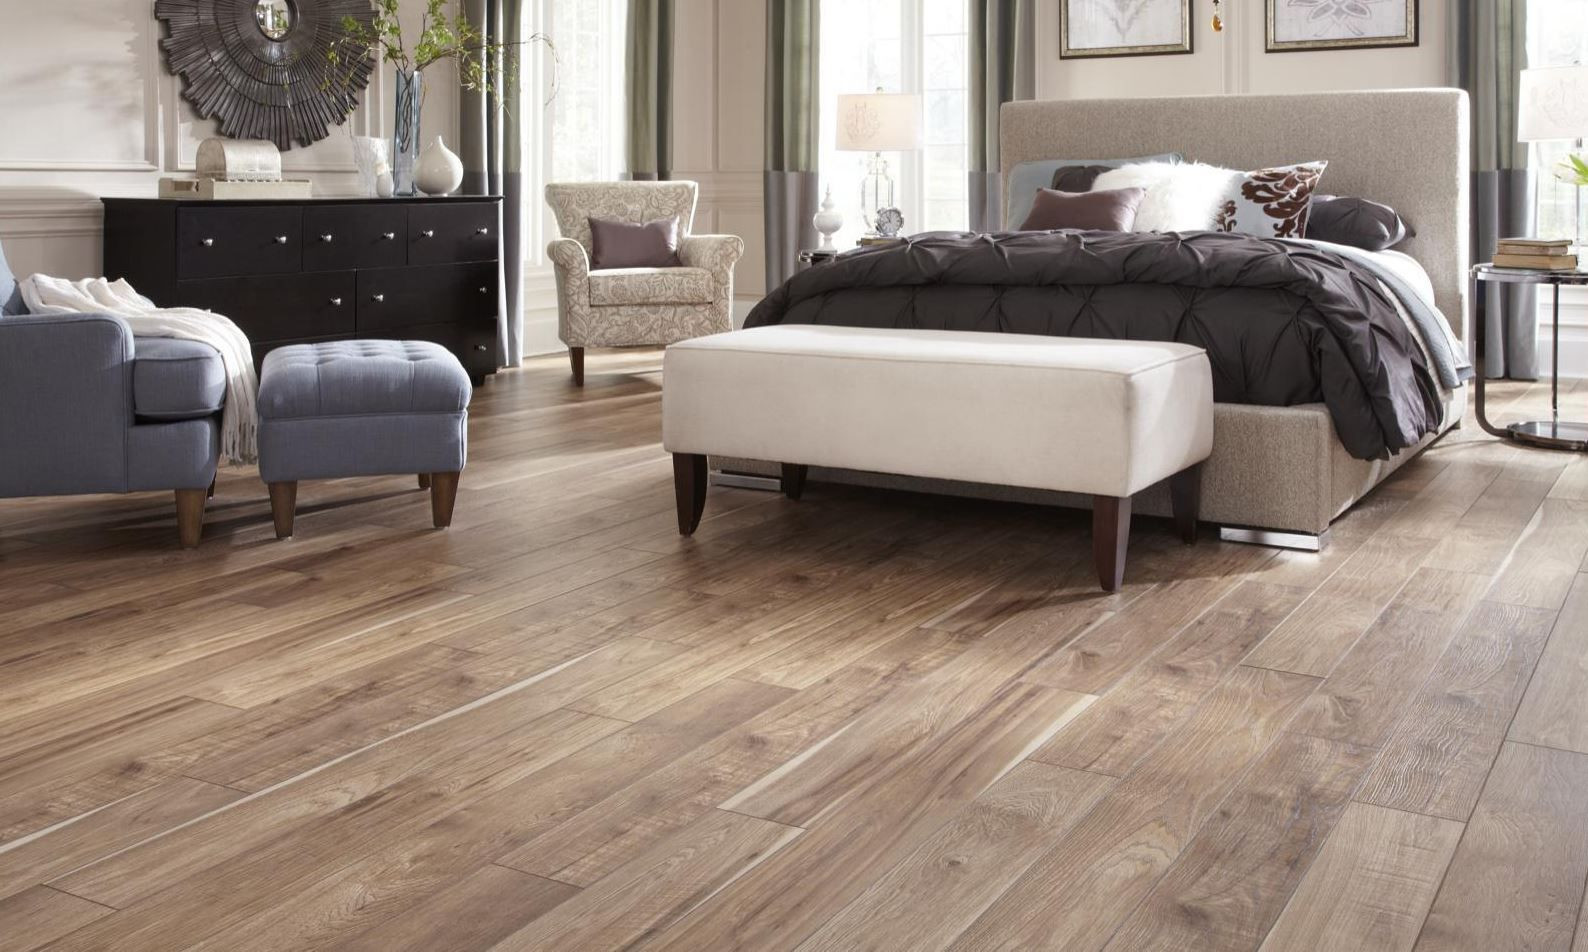 wide plank walnut hardwood flooring of luxury vinyl plank flooring that looks like wood in mannington adura luxury vinyl plank flooring 57aa7d065f9b58974a2be49e jpg